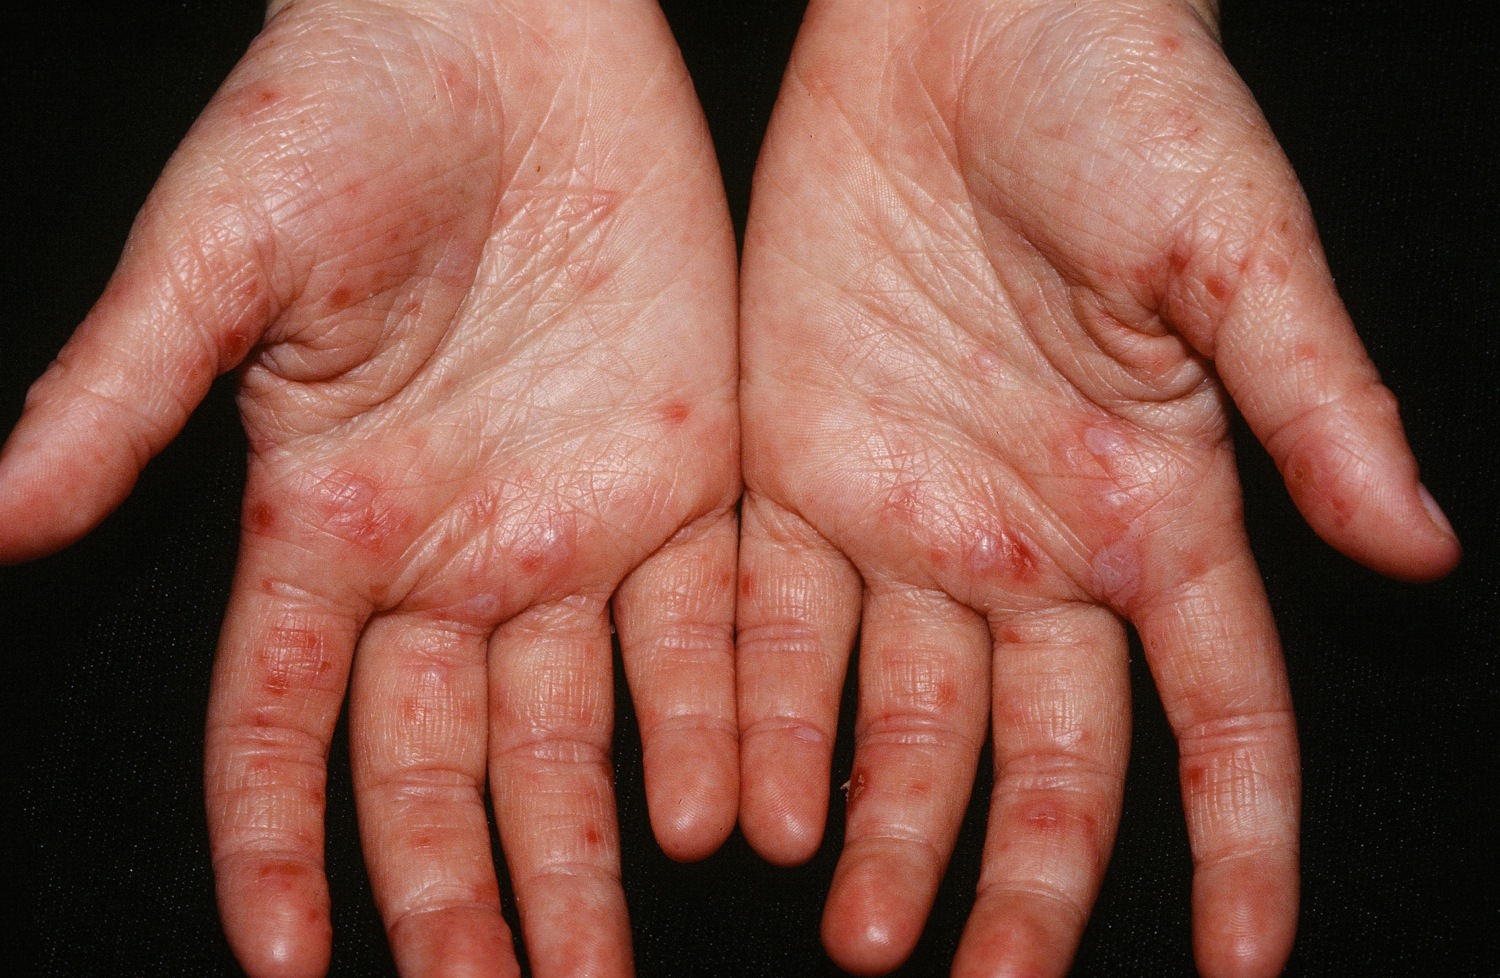 Pictures of Hand-Foot-and-Mouth Disease - HTQ